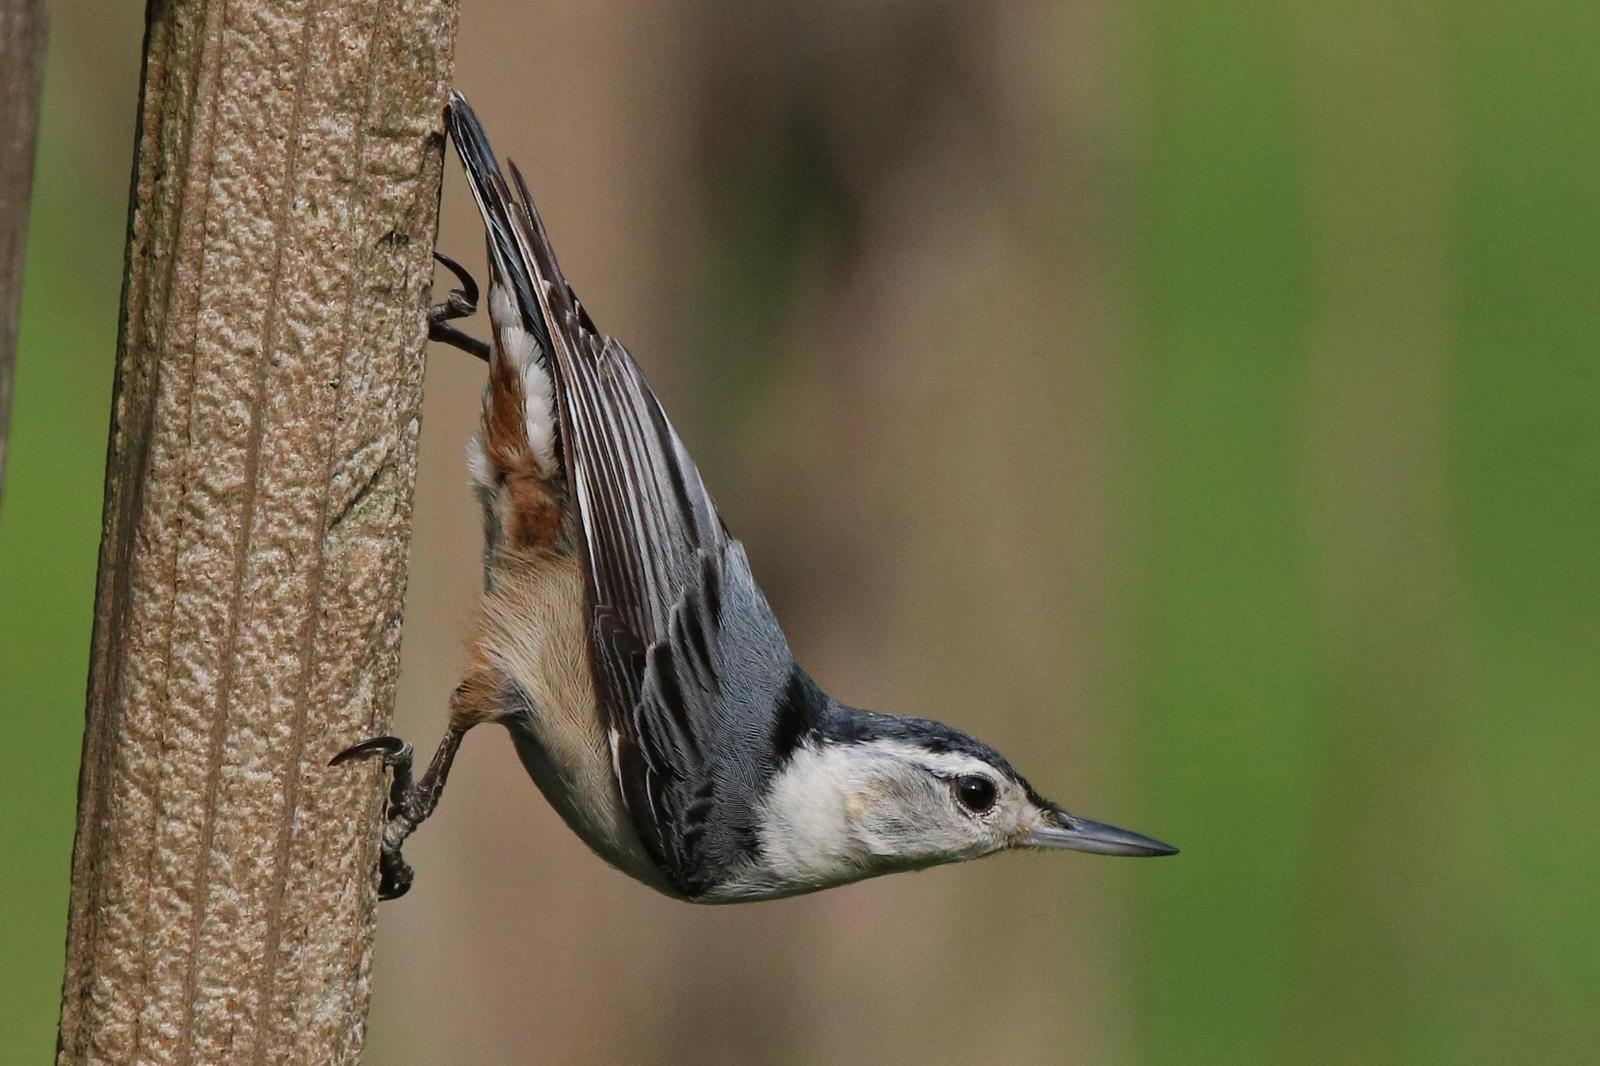 White-breasted Nuthatch Photo by Kristy Baker